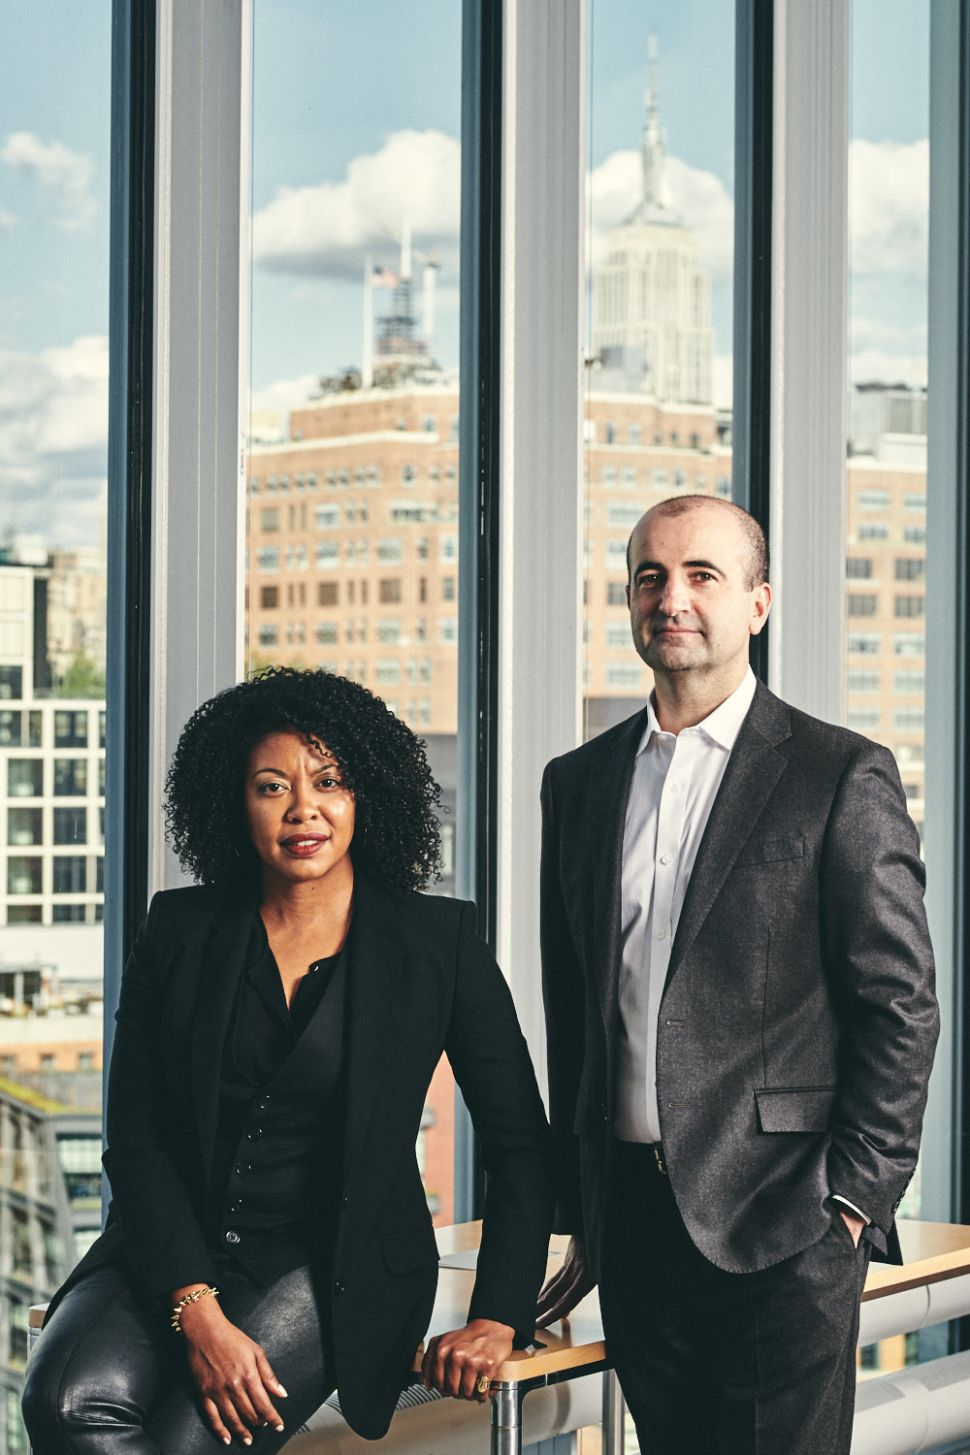 Adrienne Edwards and David Breslin Are a Smart Choice to Curate the Whitney's 2021 Biennial